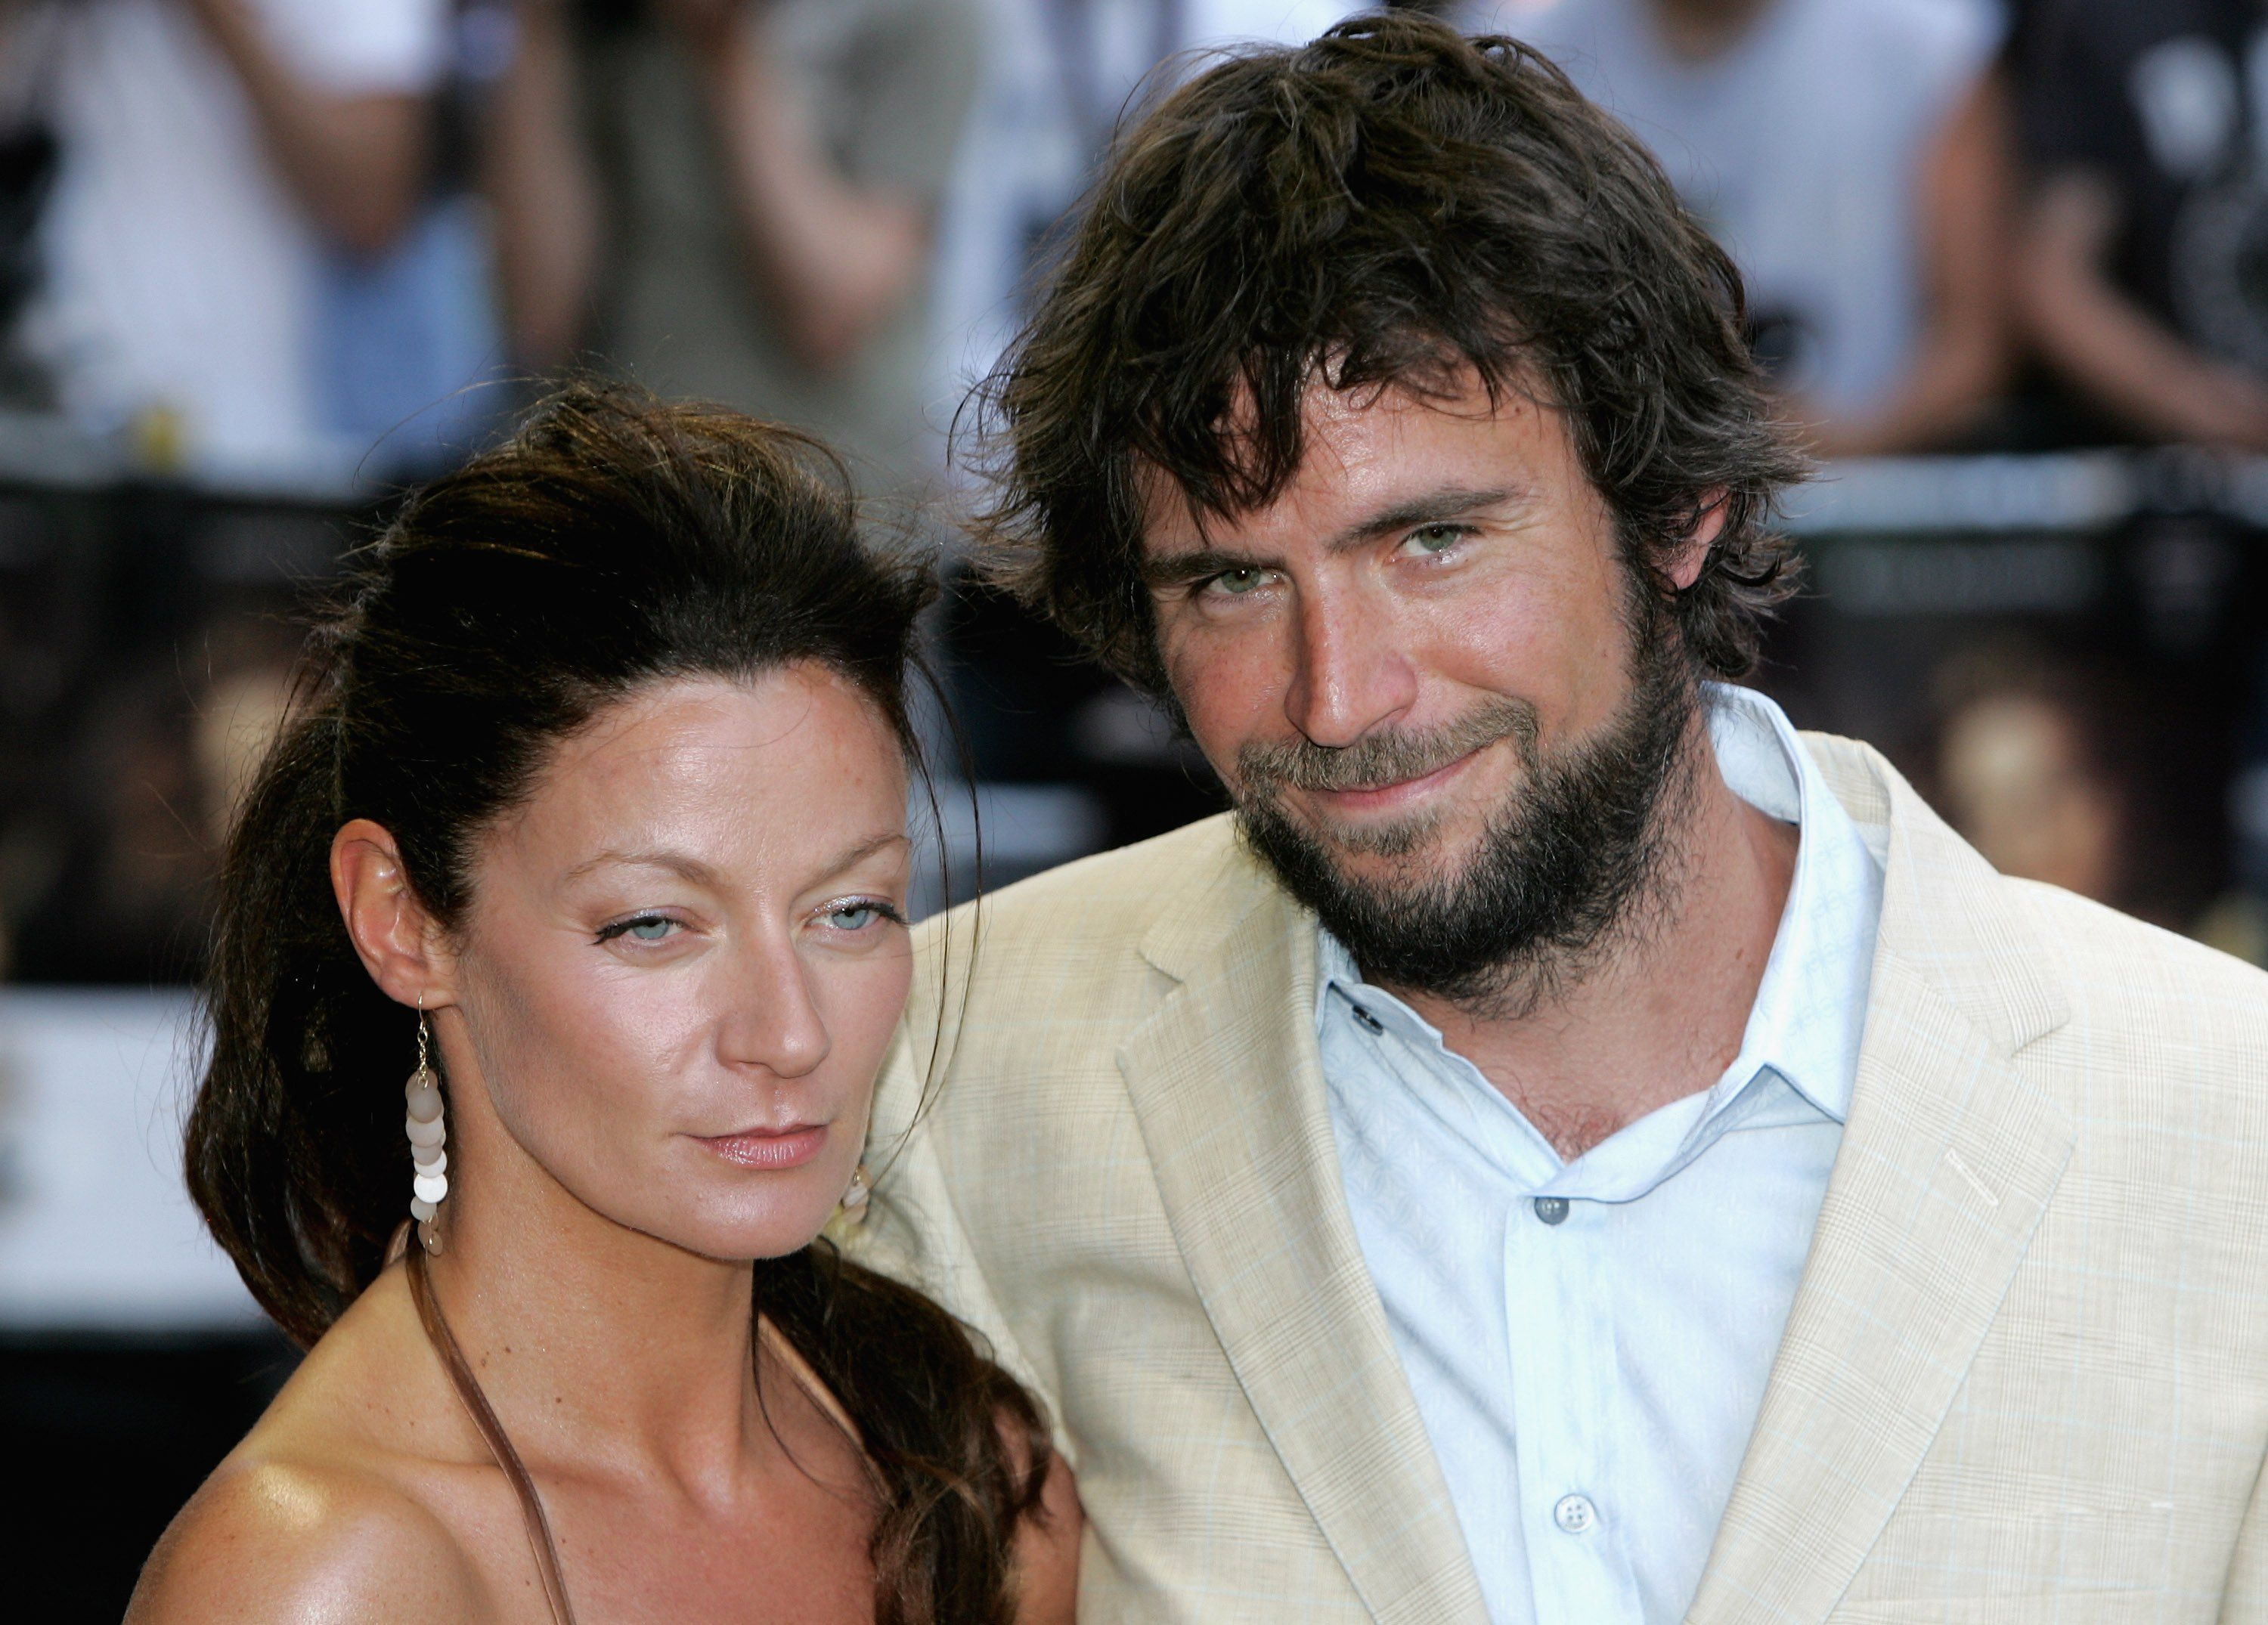 Jack Davenport and Michelle Gomez at the premiere of 'Pirates Of The Caribbean: Dead Mans Chest' in 2006 in London, England | Source: Getty Images